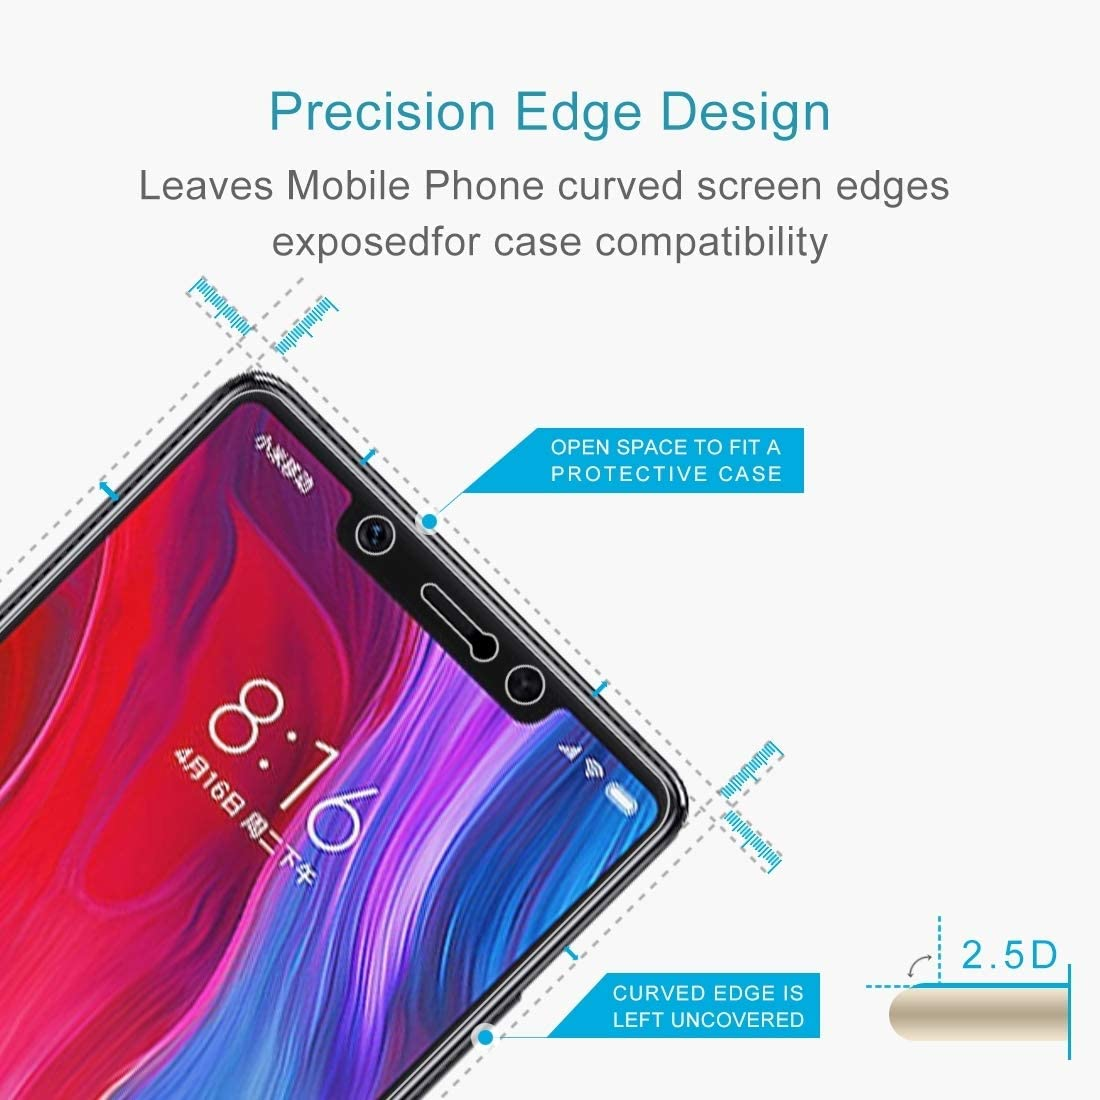 ProtectoresYHM 100 PCS 0.26mm 9H 2.5D Tempered Glass Film for Xiaomi Mi 8 SE